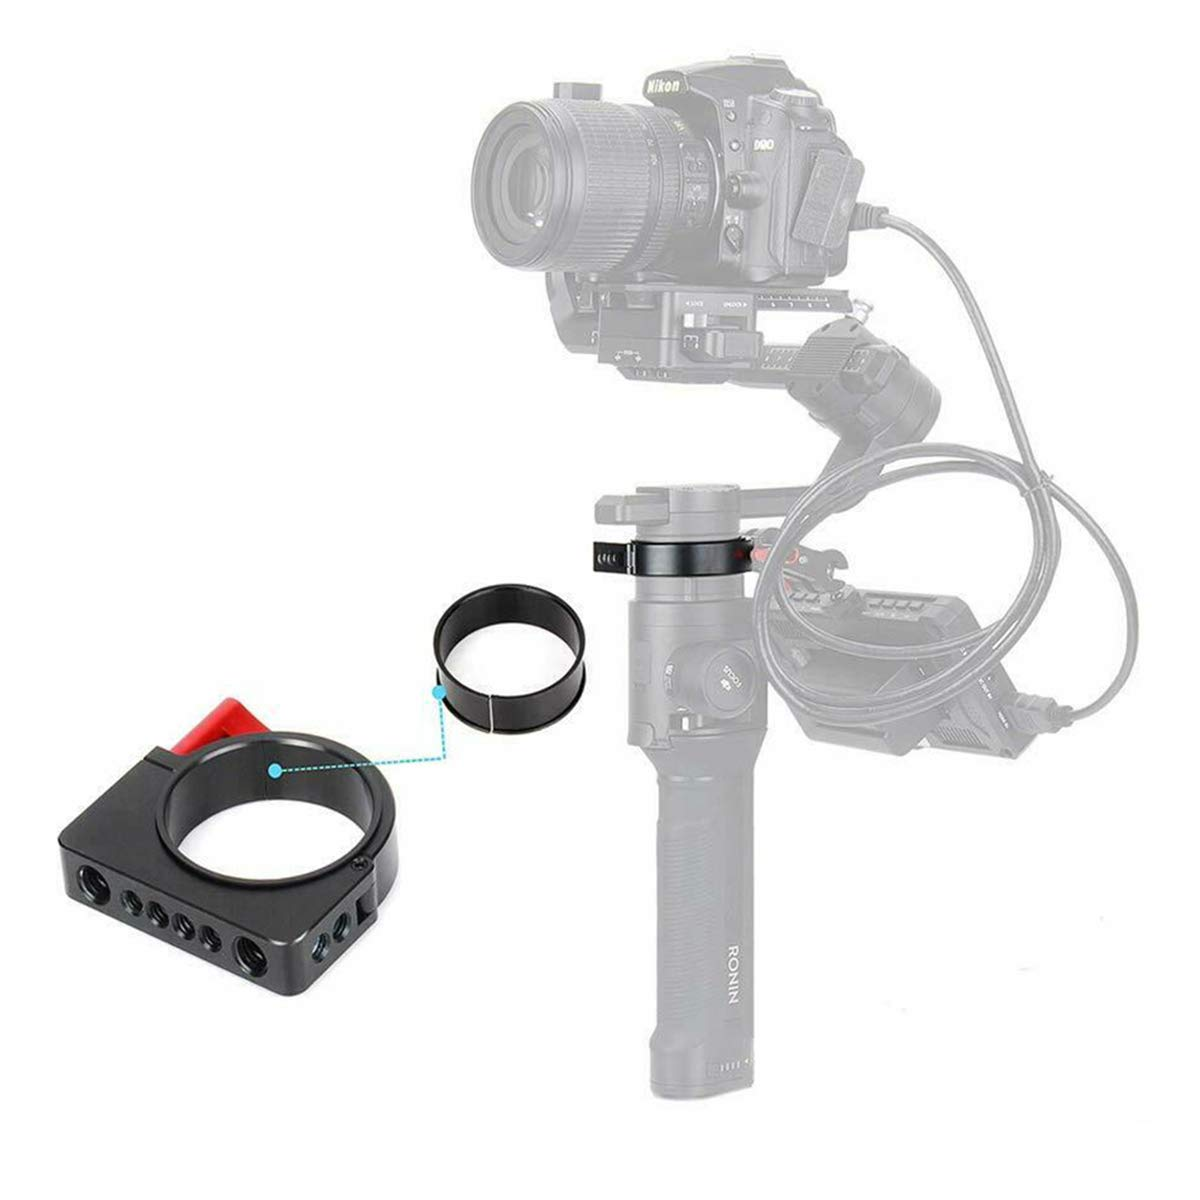 """Dazzne Aluminum Alloy Ronin S Extension Adapter Ring Video Monitor Mounting with 1/4"""" and 3/8"""" Screws Applicable for Camera Microphone Monitor LED Video Light"""